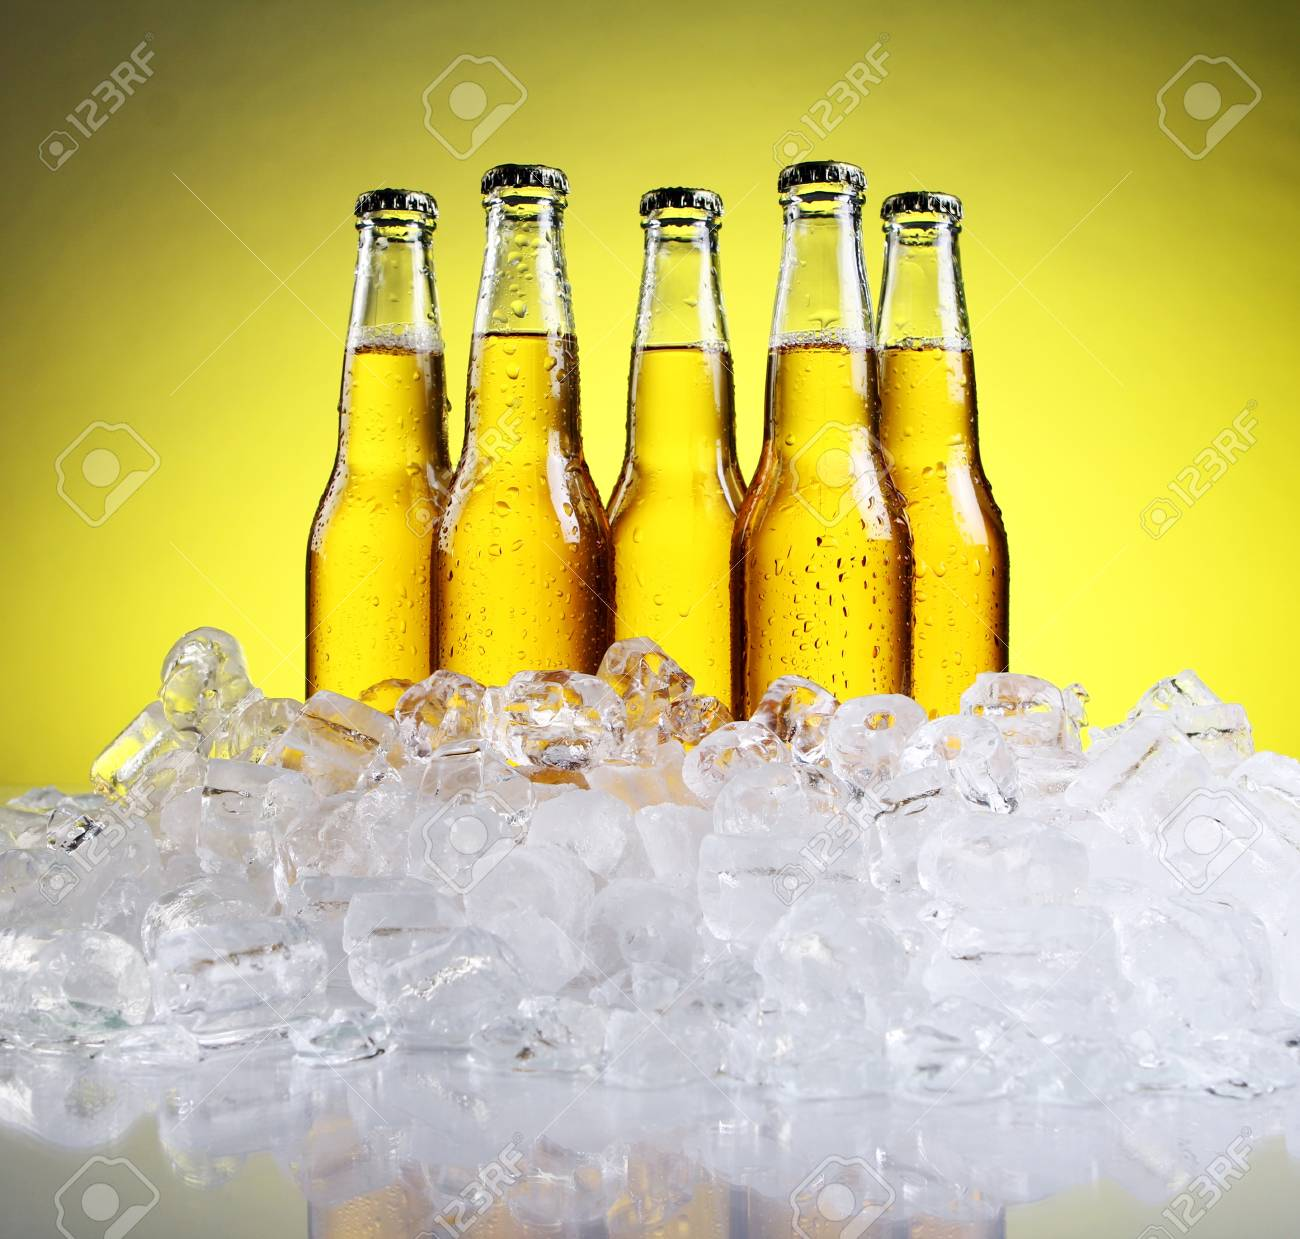 Bottles and Glass of beer with foam over yellow background Stock Photo - 9636289